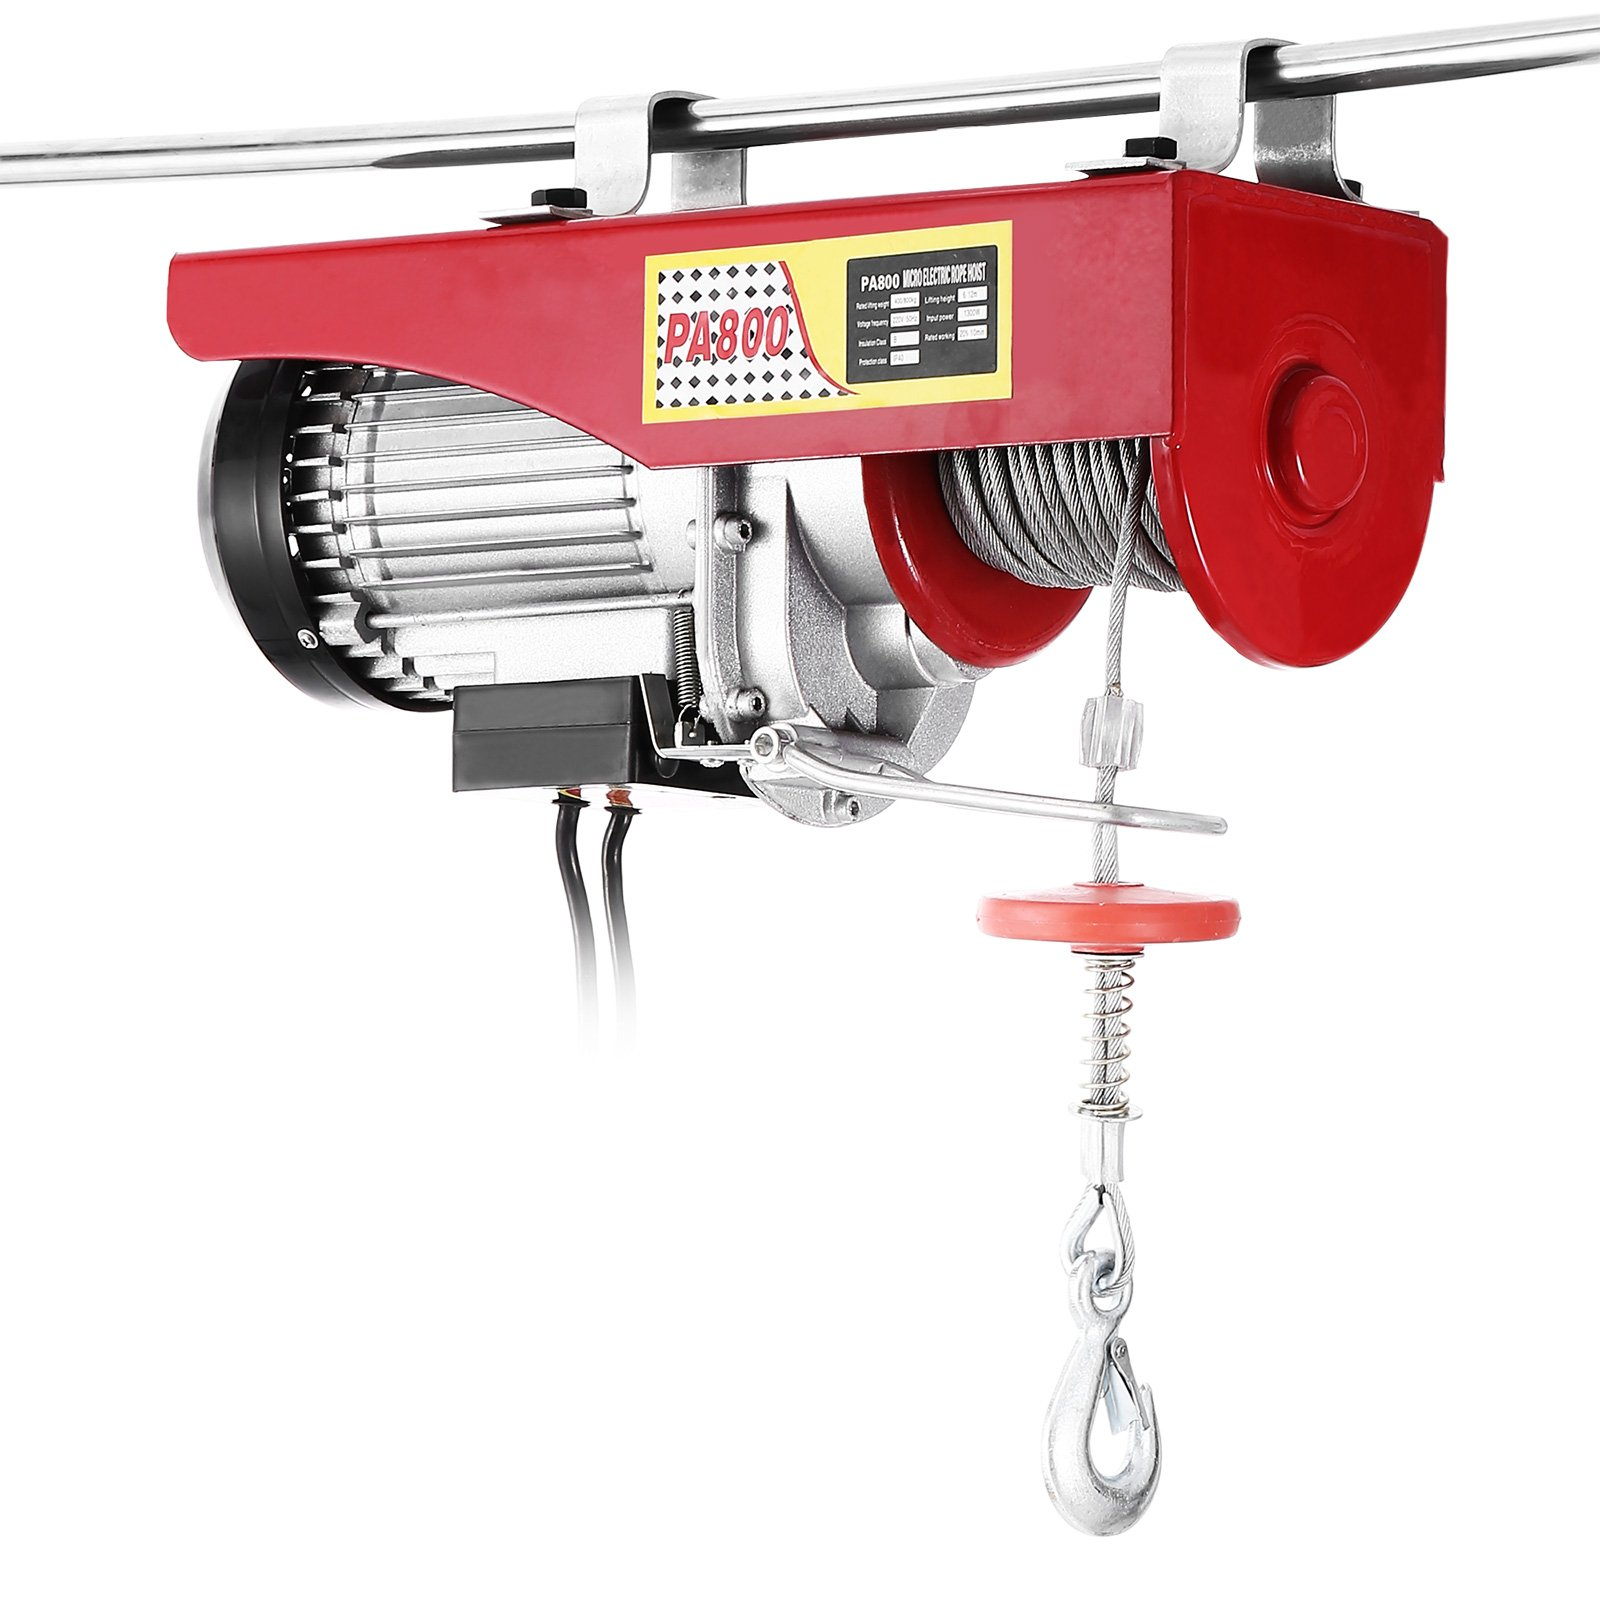 Popsport Electric Hoist 1500LBS Electric Hoist Crane 110V 1350W Lift Electric Hoist Crane Overhead Garage Winch with Remote Control Auto Lift (1500LBS)